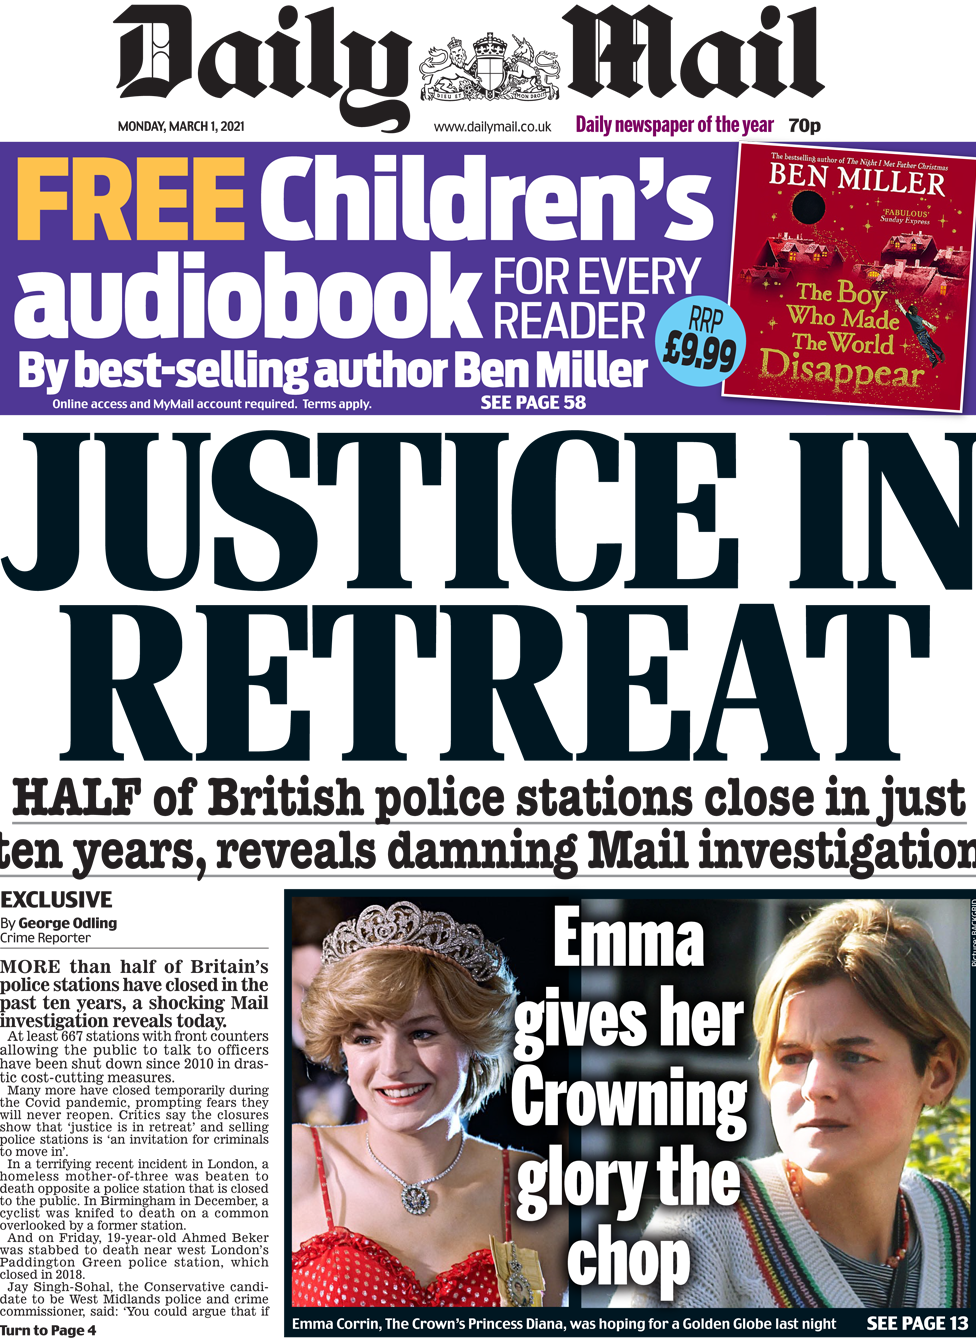 The Daily Mail front page 1 March 2021